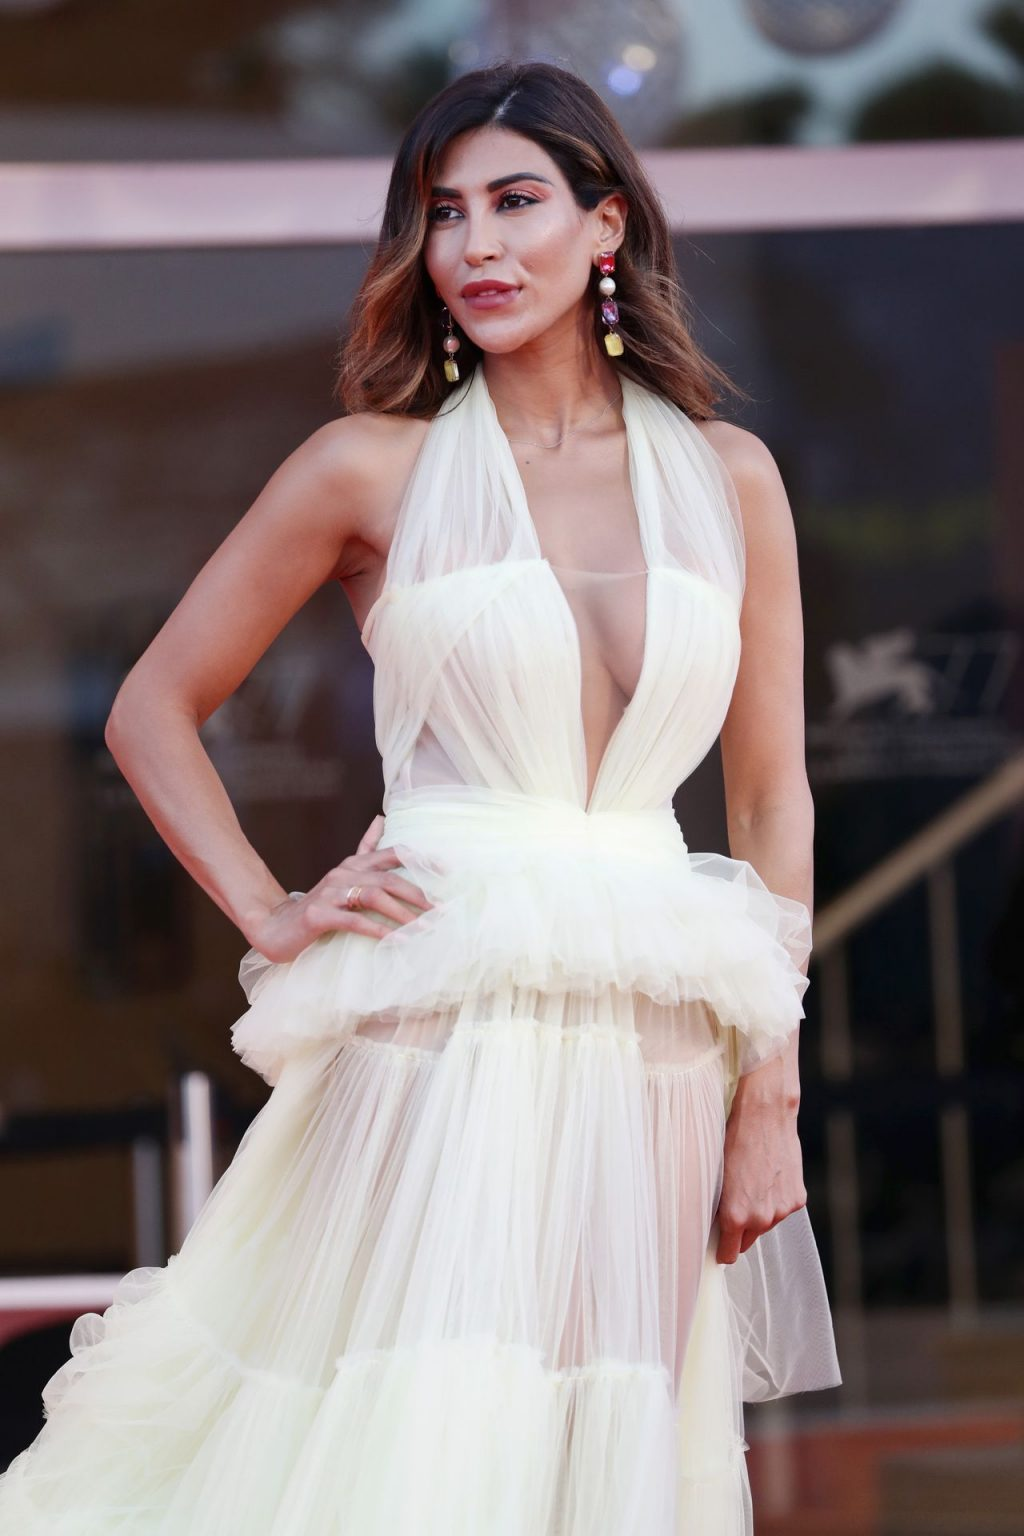 Mila Suarez Flaunts Her Tits and Underwear on the Red Carpet (14 Photos)